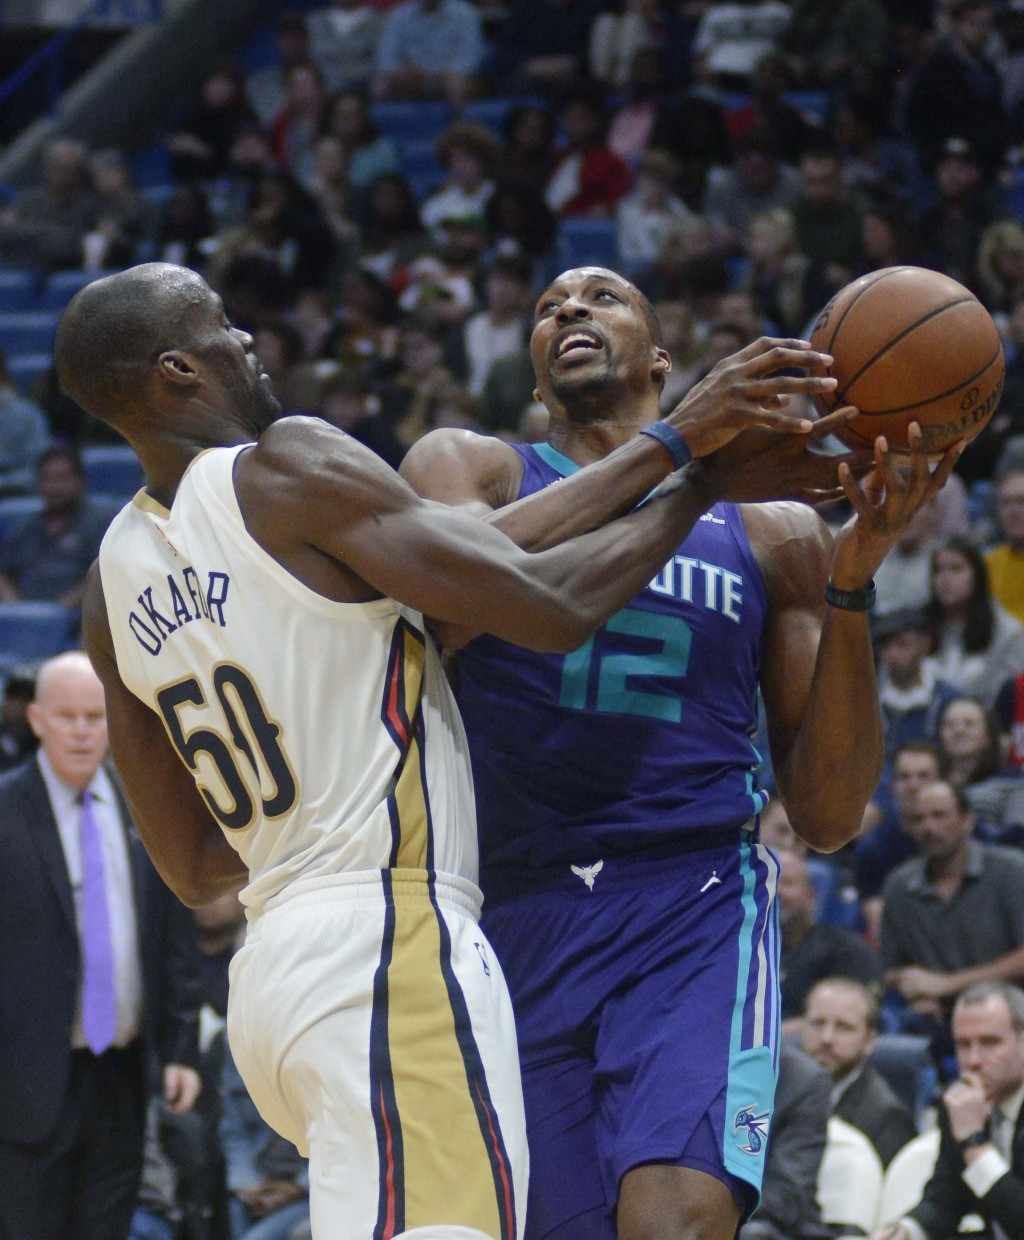 Charlotte Hornets' Dwight Howard (12) fights for the ball against New Orleans Pelicans center Emeka Okafor (50) in the first half of an NBA basketball